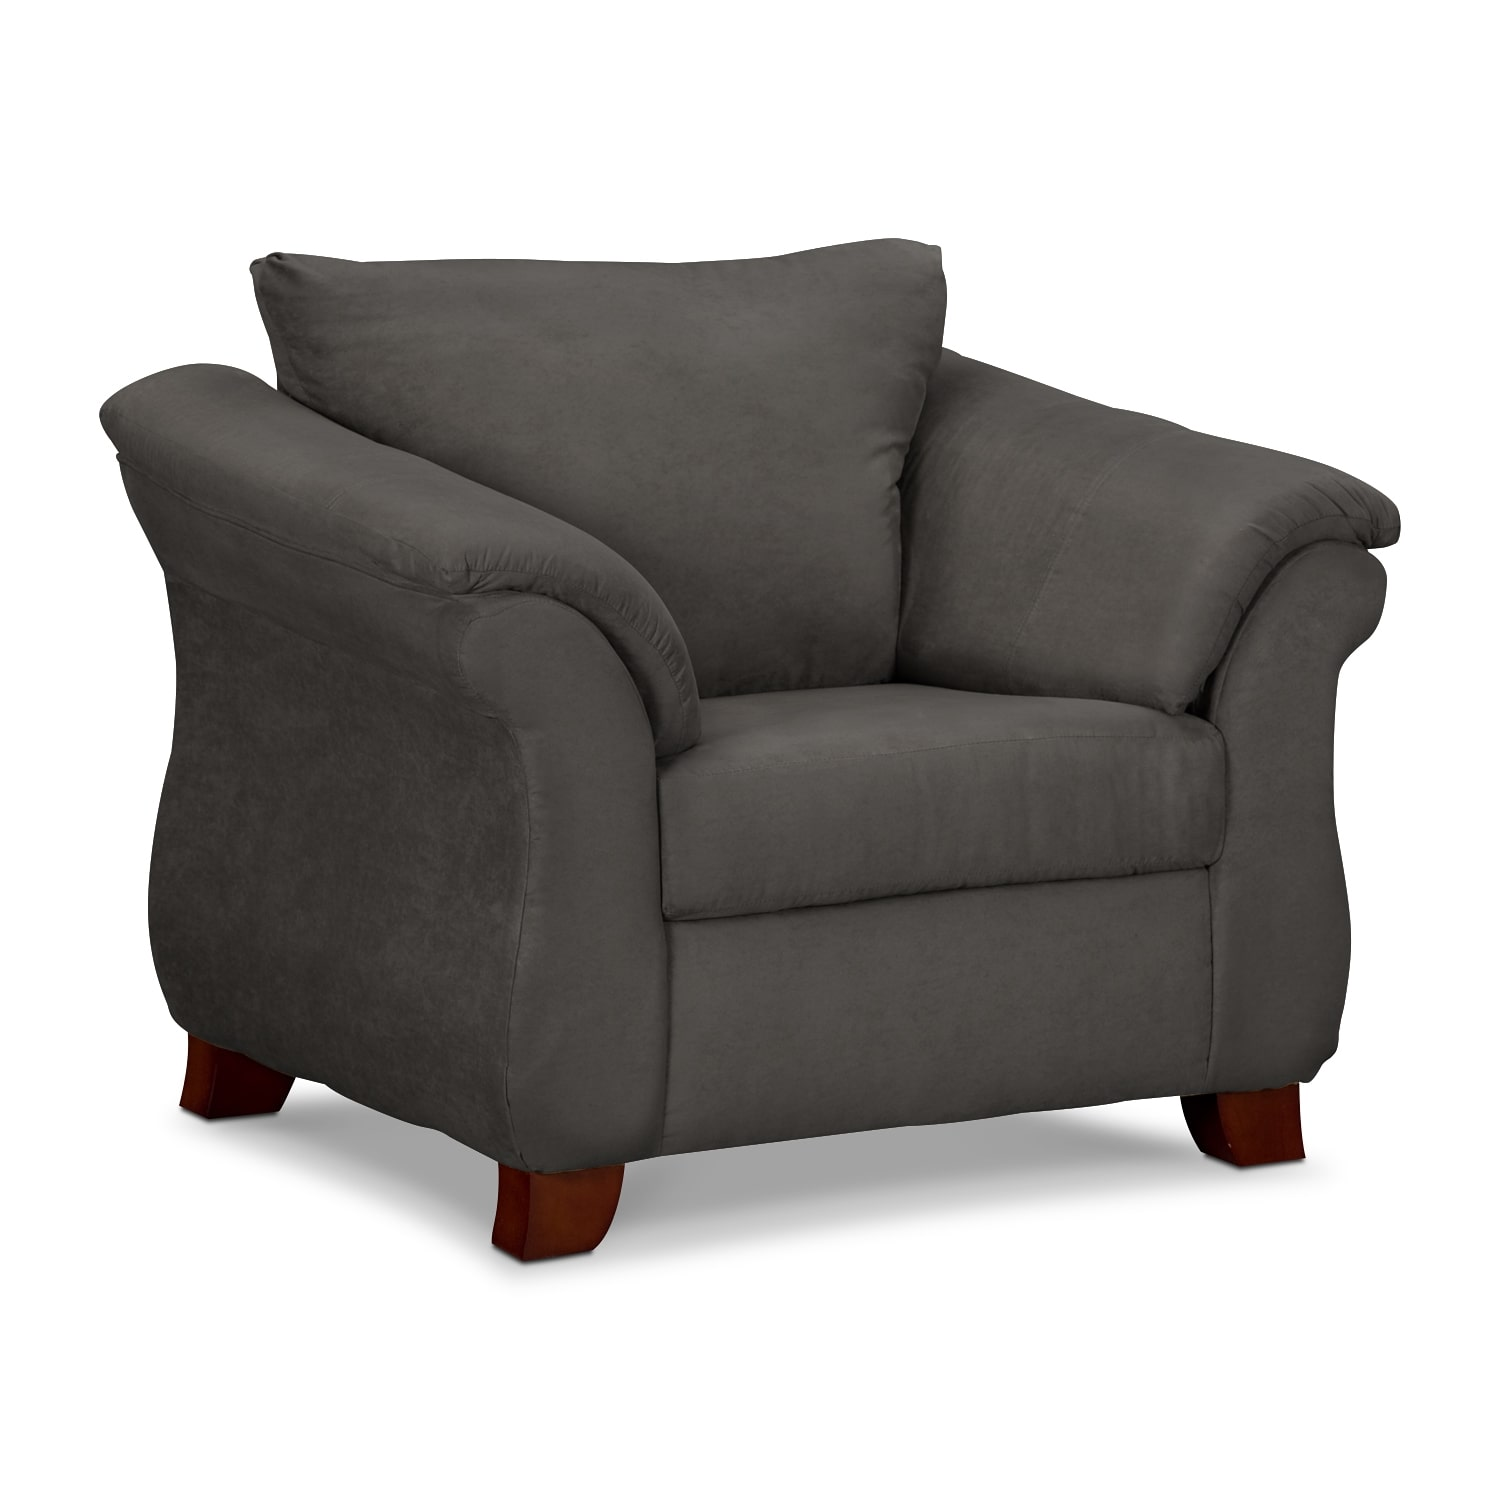 Living Room Furniture - Perry Graphite Chair